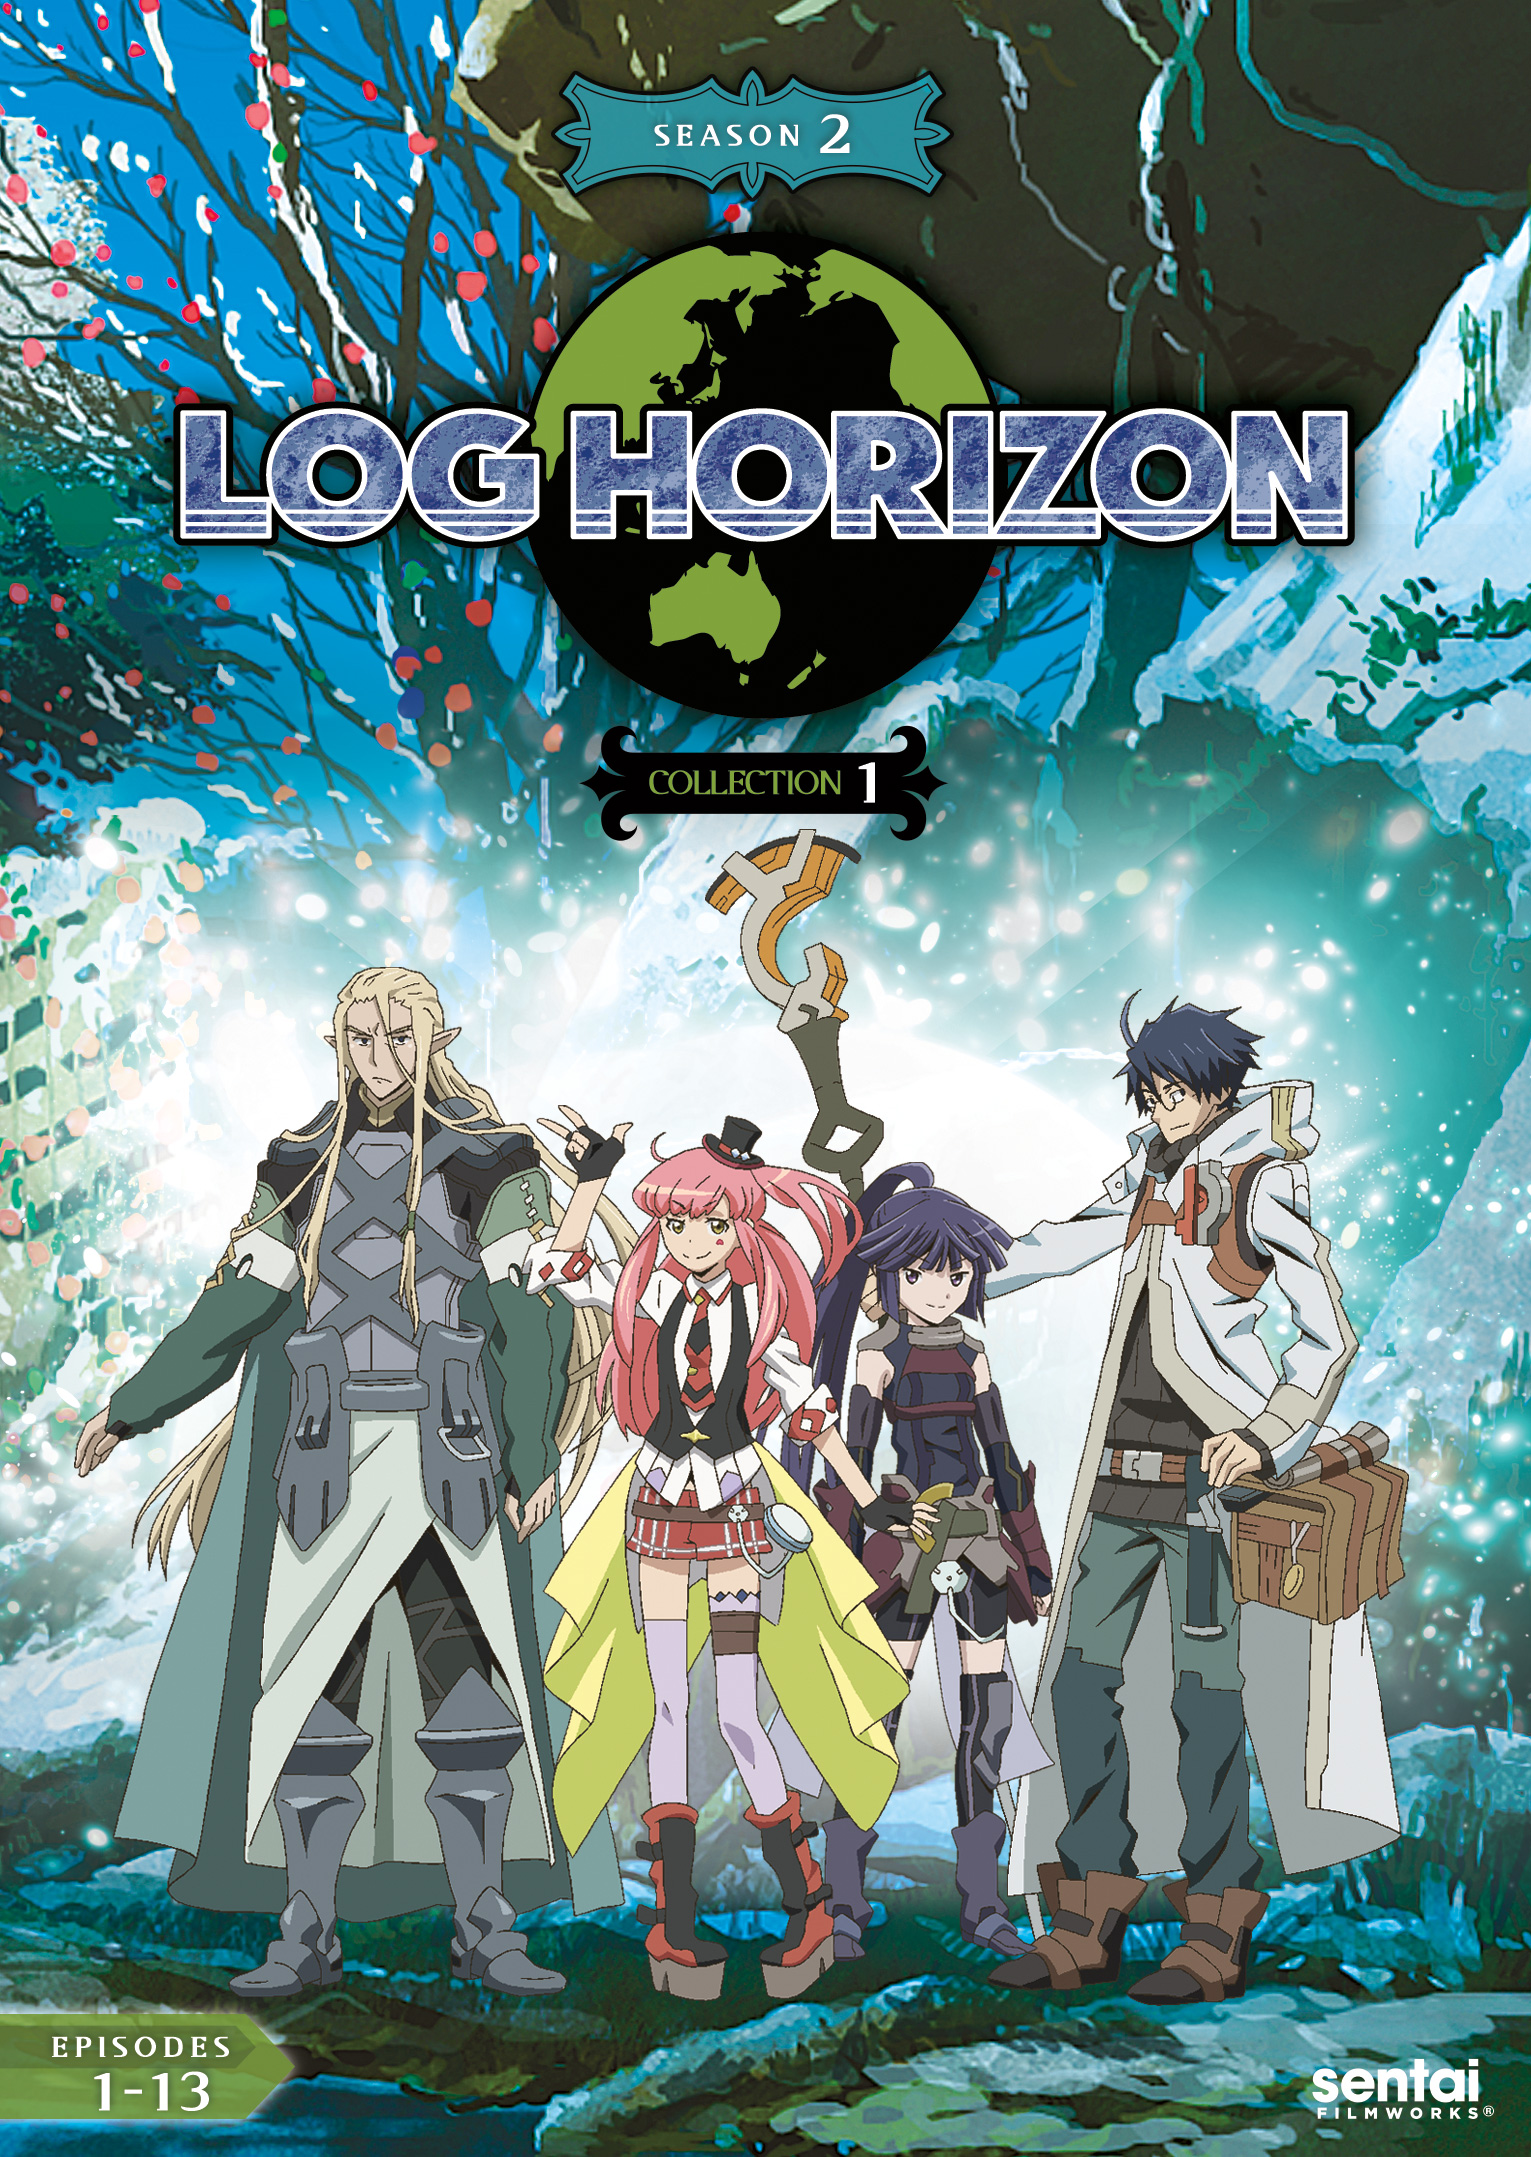 Log Horizon 2 Collection 1 DVD 814131013484